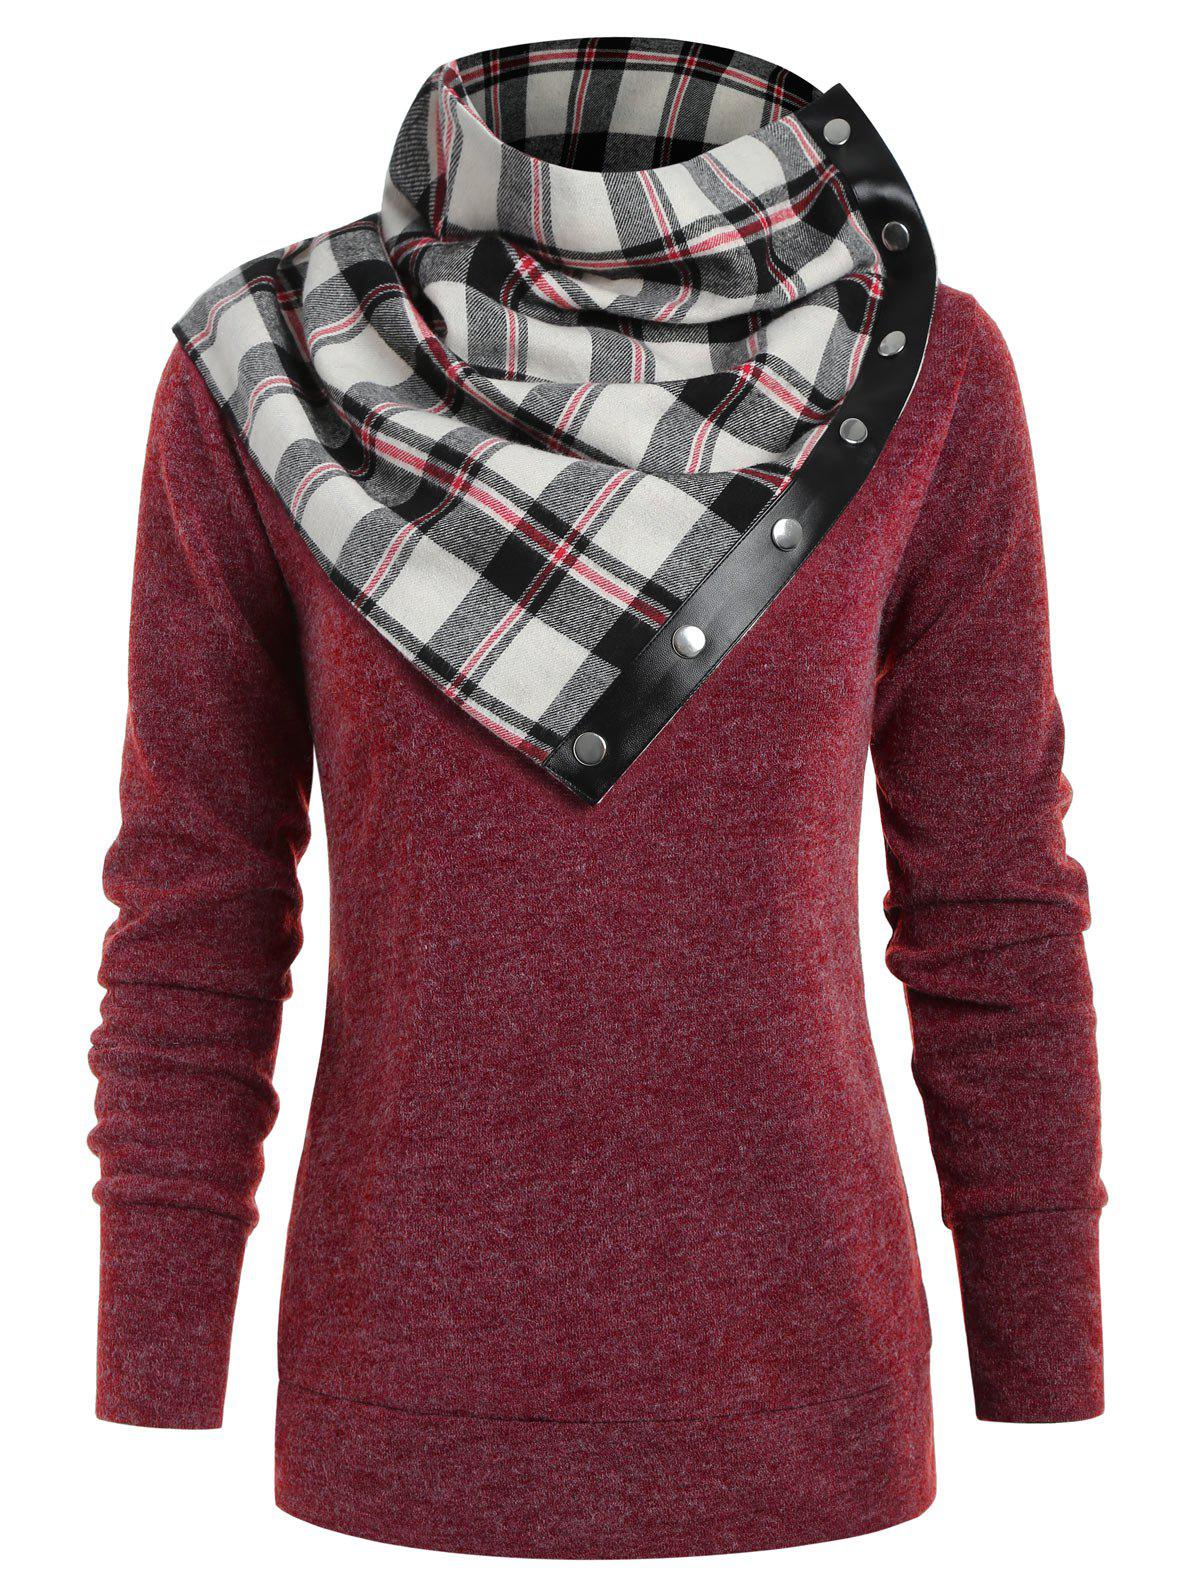 Sweat-shirt Simple à Col Rond à Tartan Rouge Vineux S